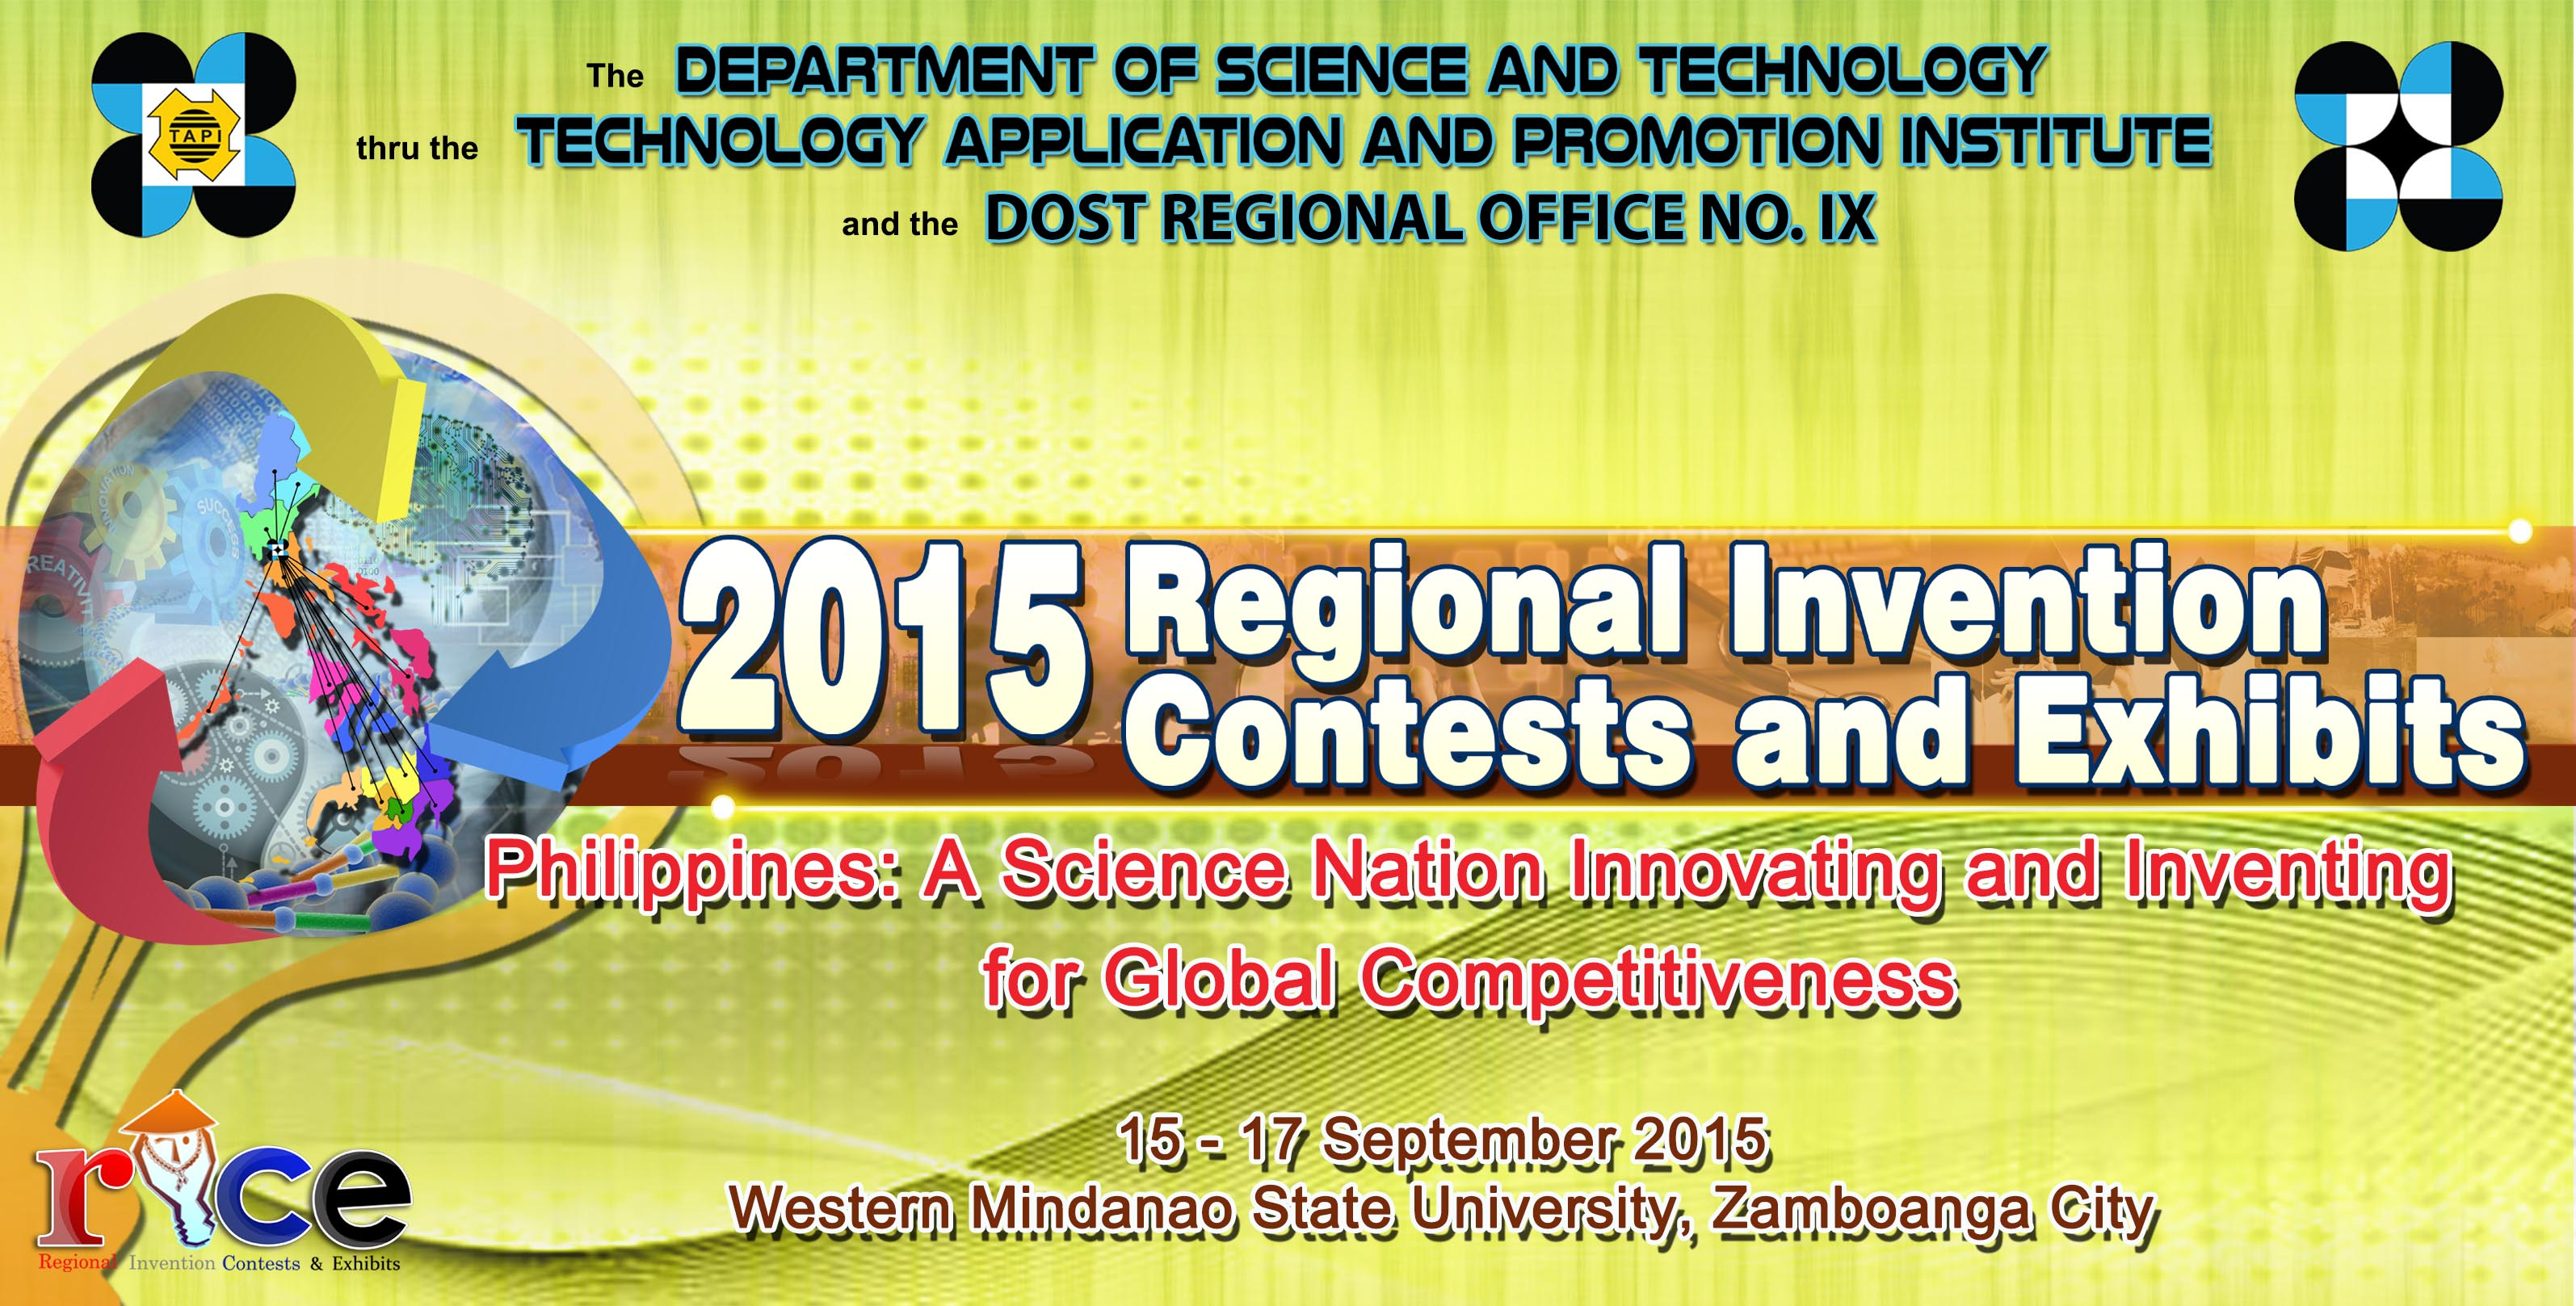 Regional Invention and Contest Exhibit 2015